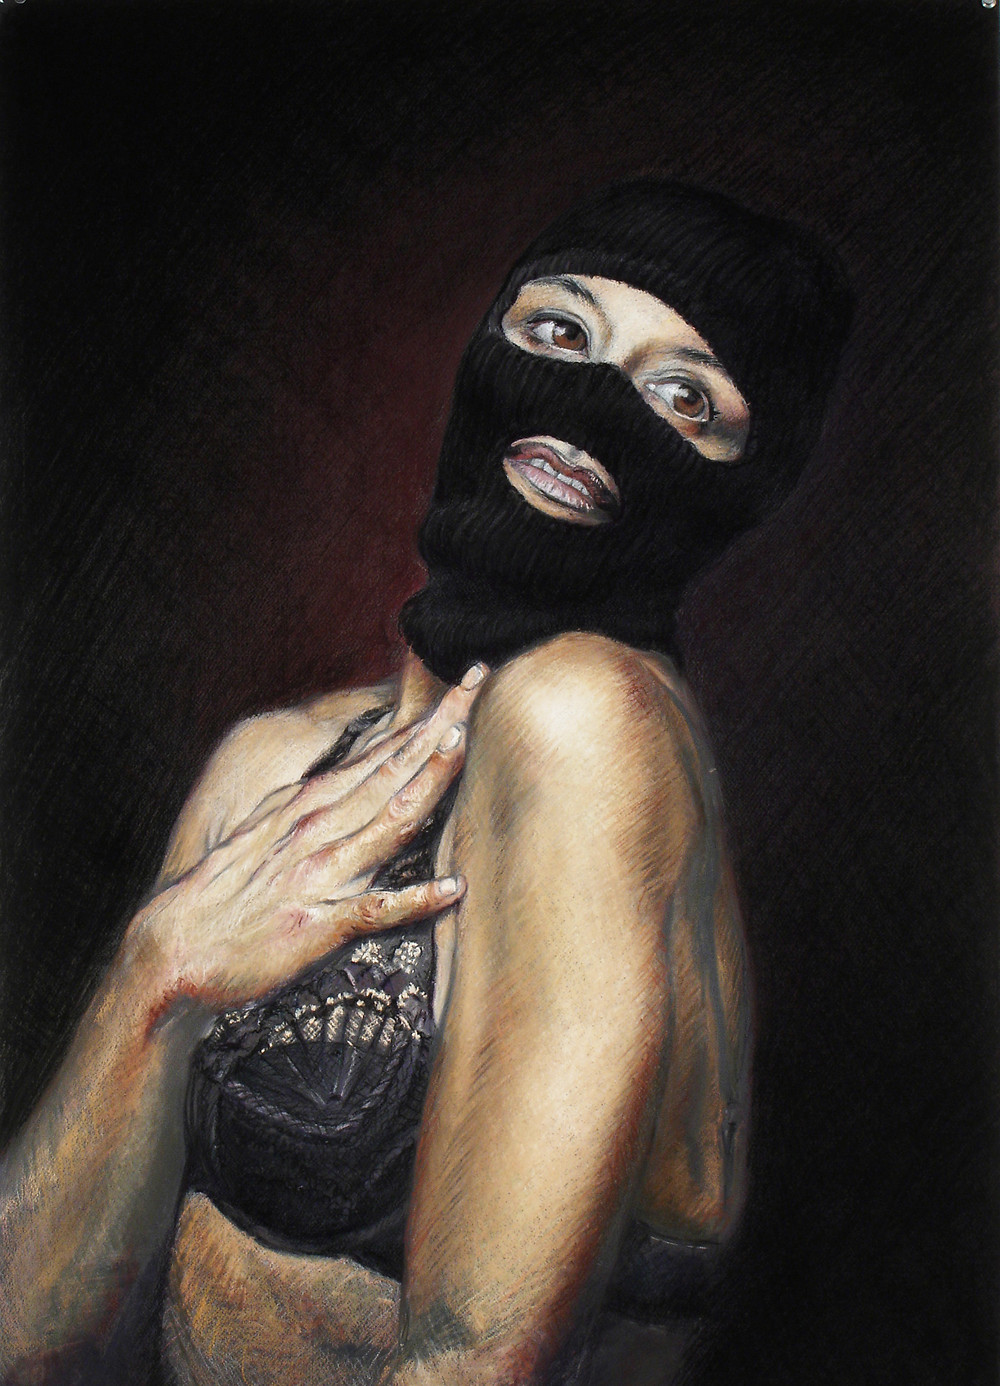 A portrait of a woman wearing lingerie and a ski mask.